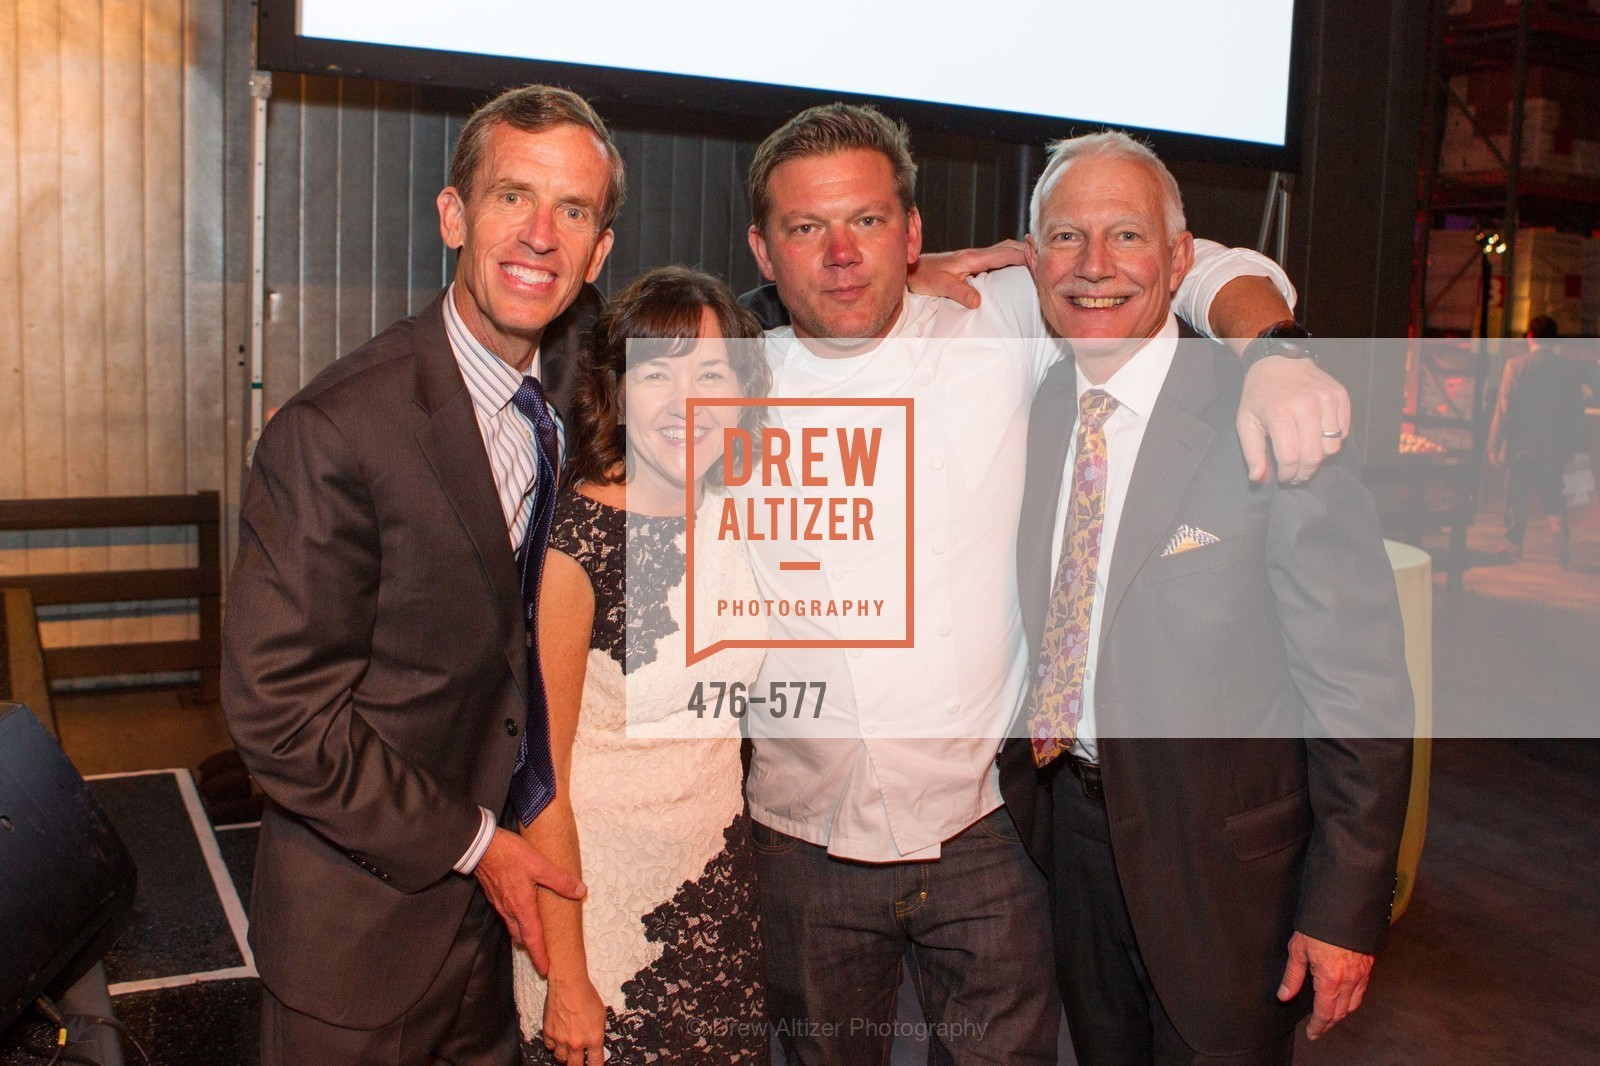 Timothy Geraghty, Leslie Bacho, Tyler Florence, Paul Ash, SF-MARIN FOOD BANK One Big Table Gala, US, September 27th, 2014,Drew Altizer, Drew Altizer Photography, full-service agency, private events, San Francisco photographer, photographer california